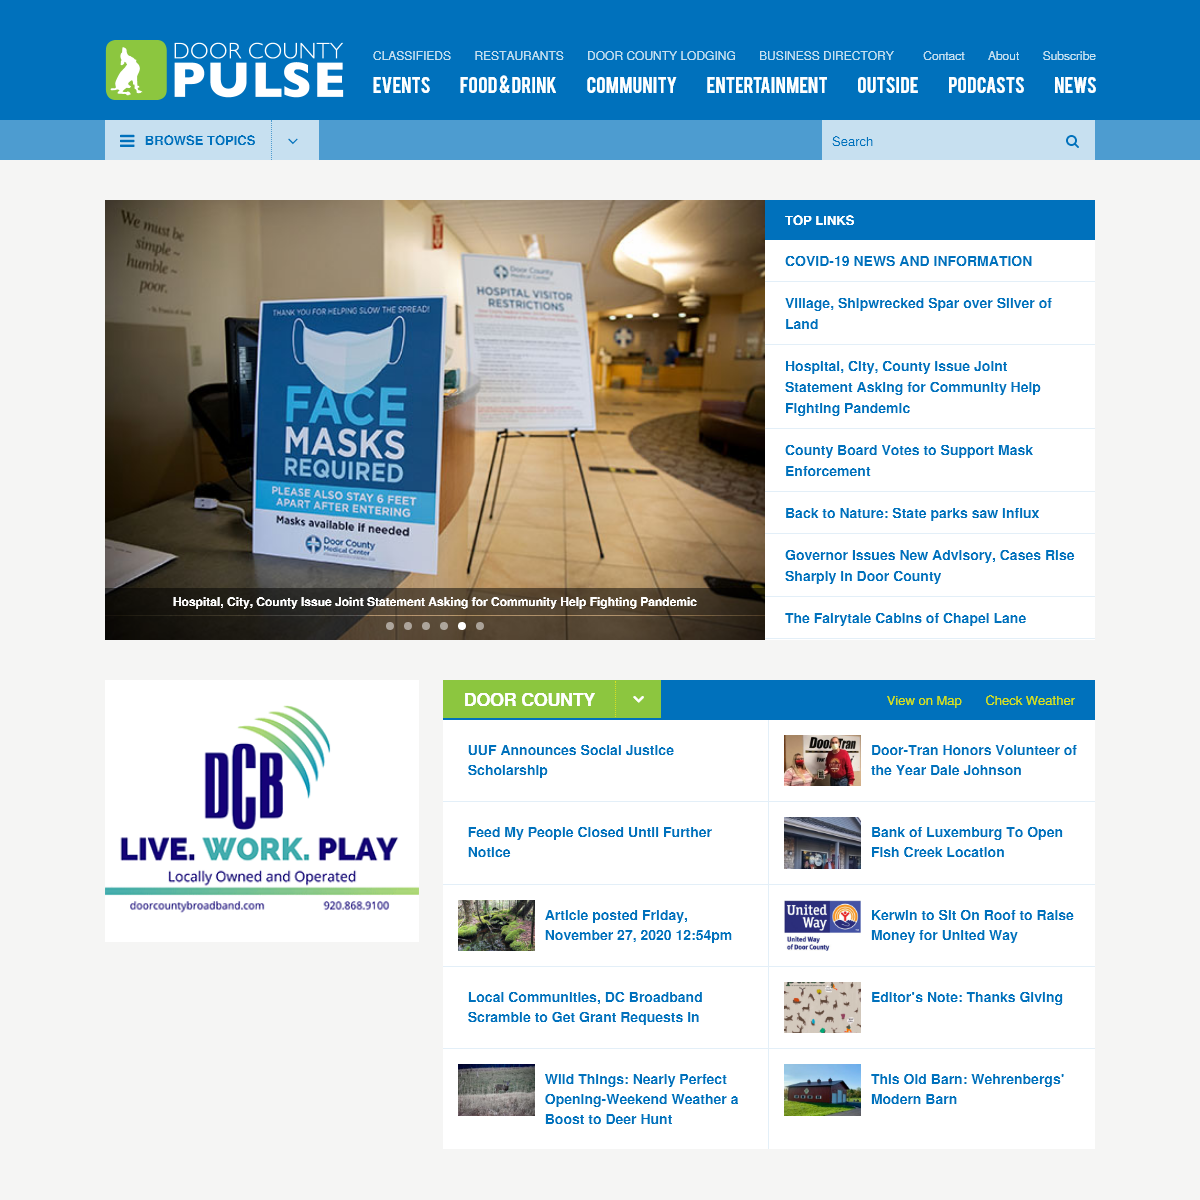 Door County News - Door County Pulse